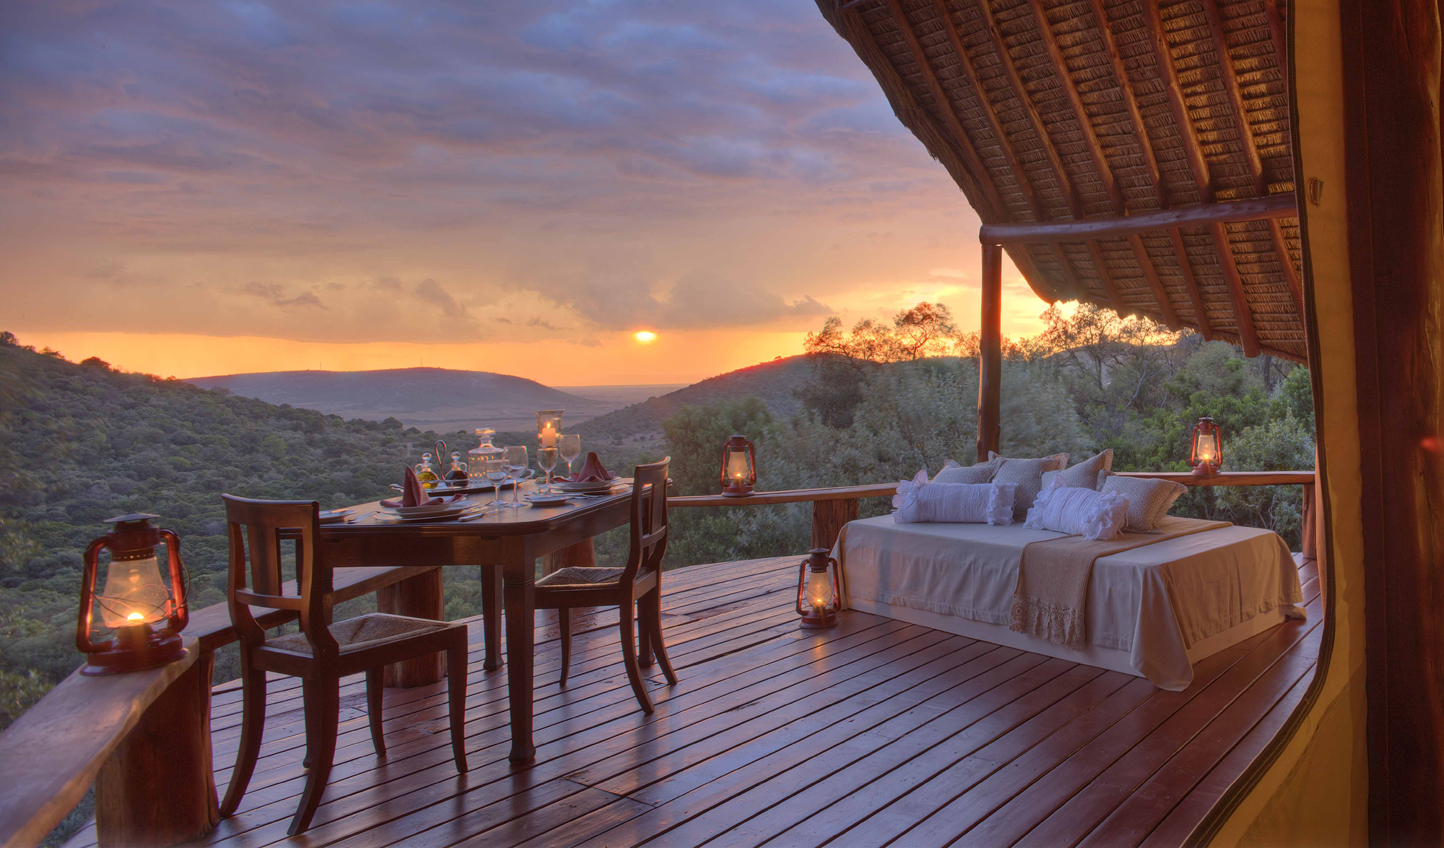 Gaze into the sunset from the Honeymoon Love Shack